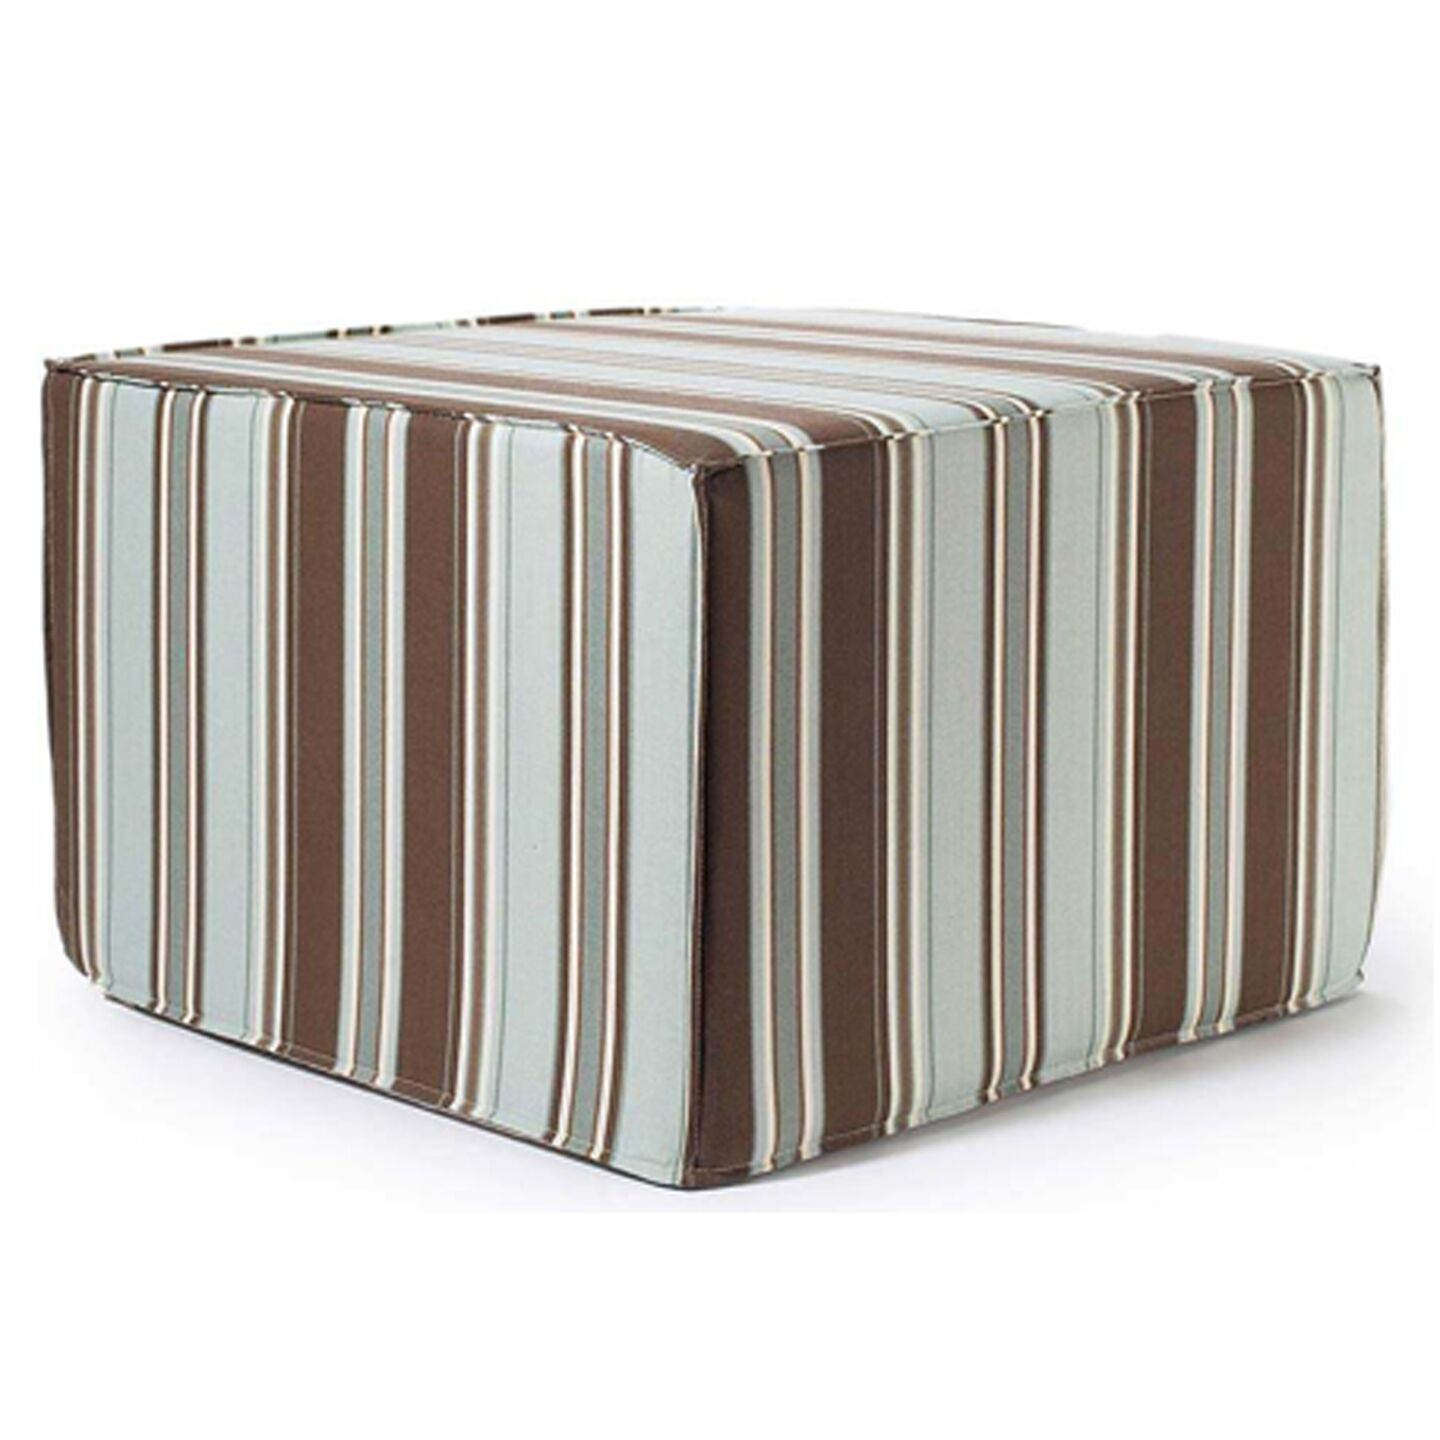 Thick Stripes Outdoor Ottoman in Spa